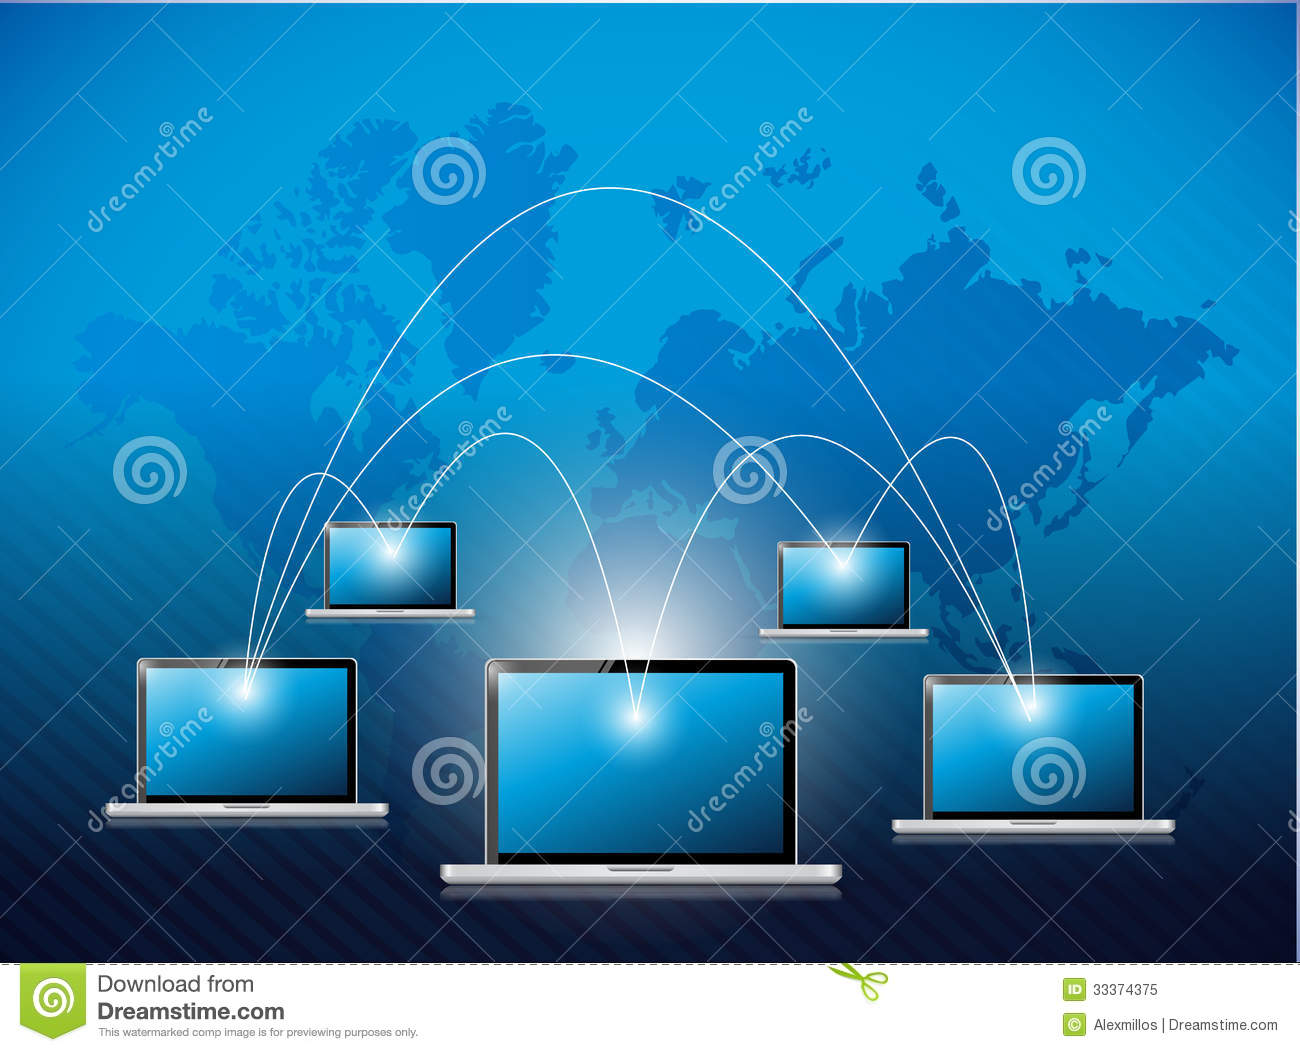 Network laptop connection illustration design stock illustration network laptop connection illustration design gumiabroncs Choice Image